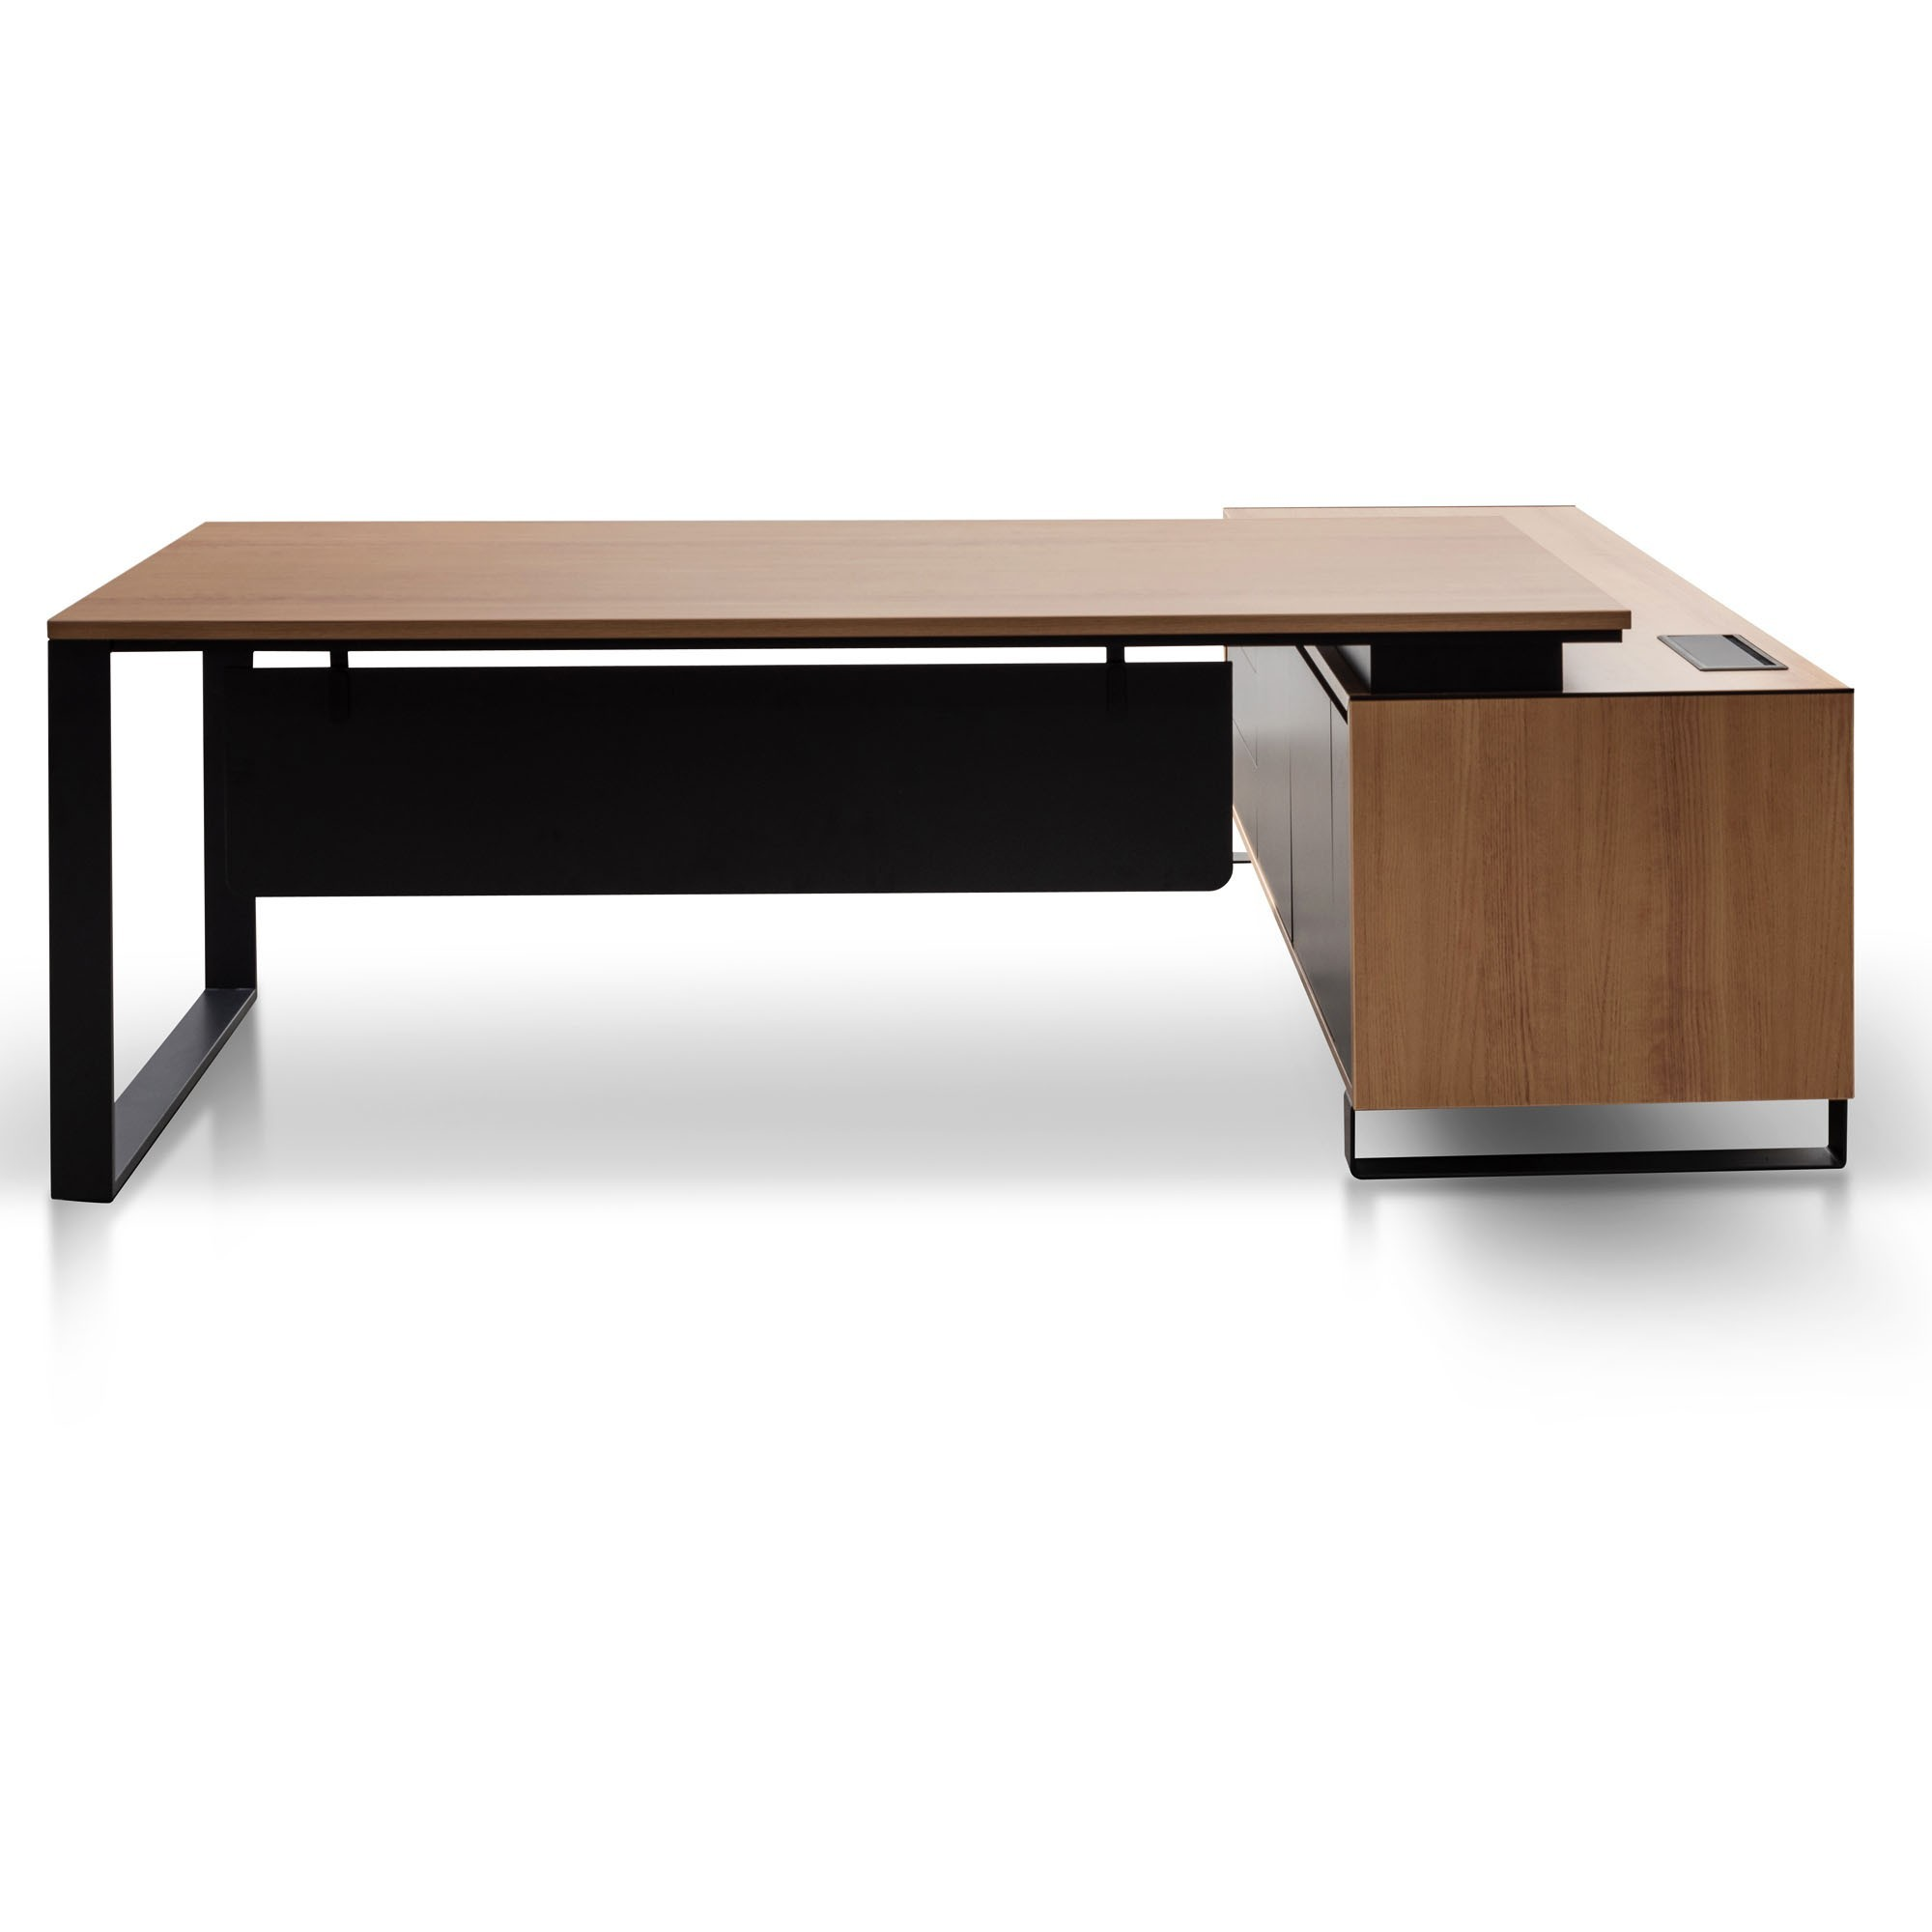 Laverne Executive Office Desk, Left Return, 230cm, Walnut / Black